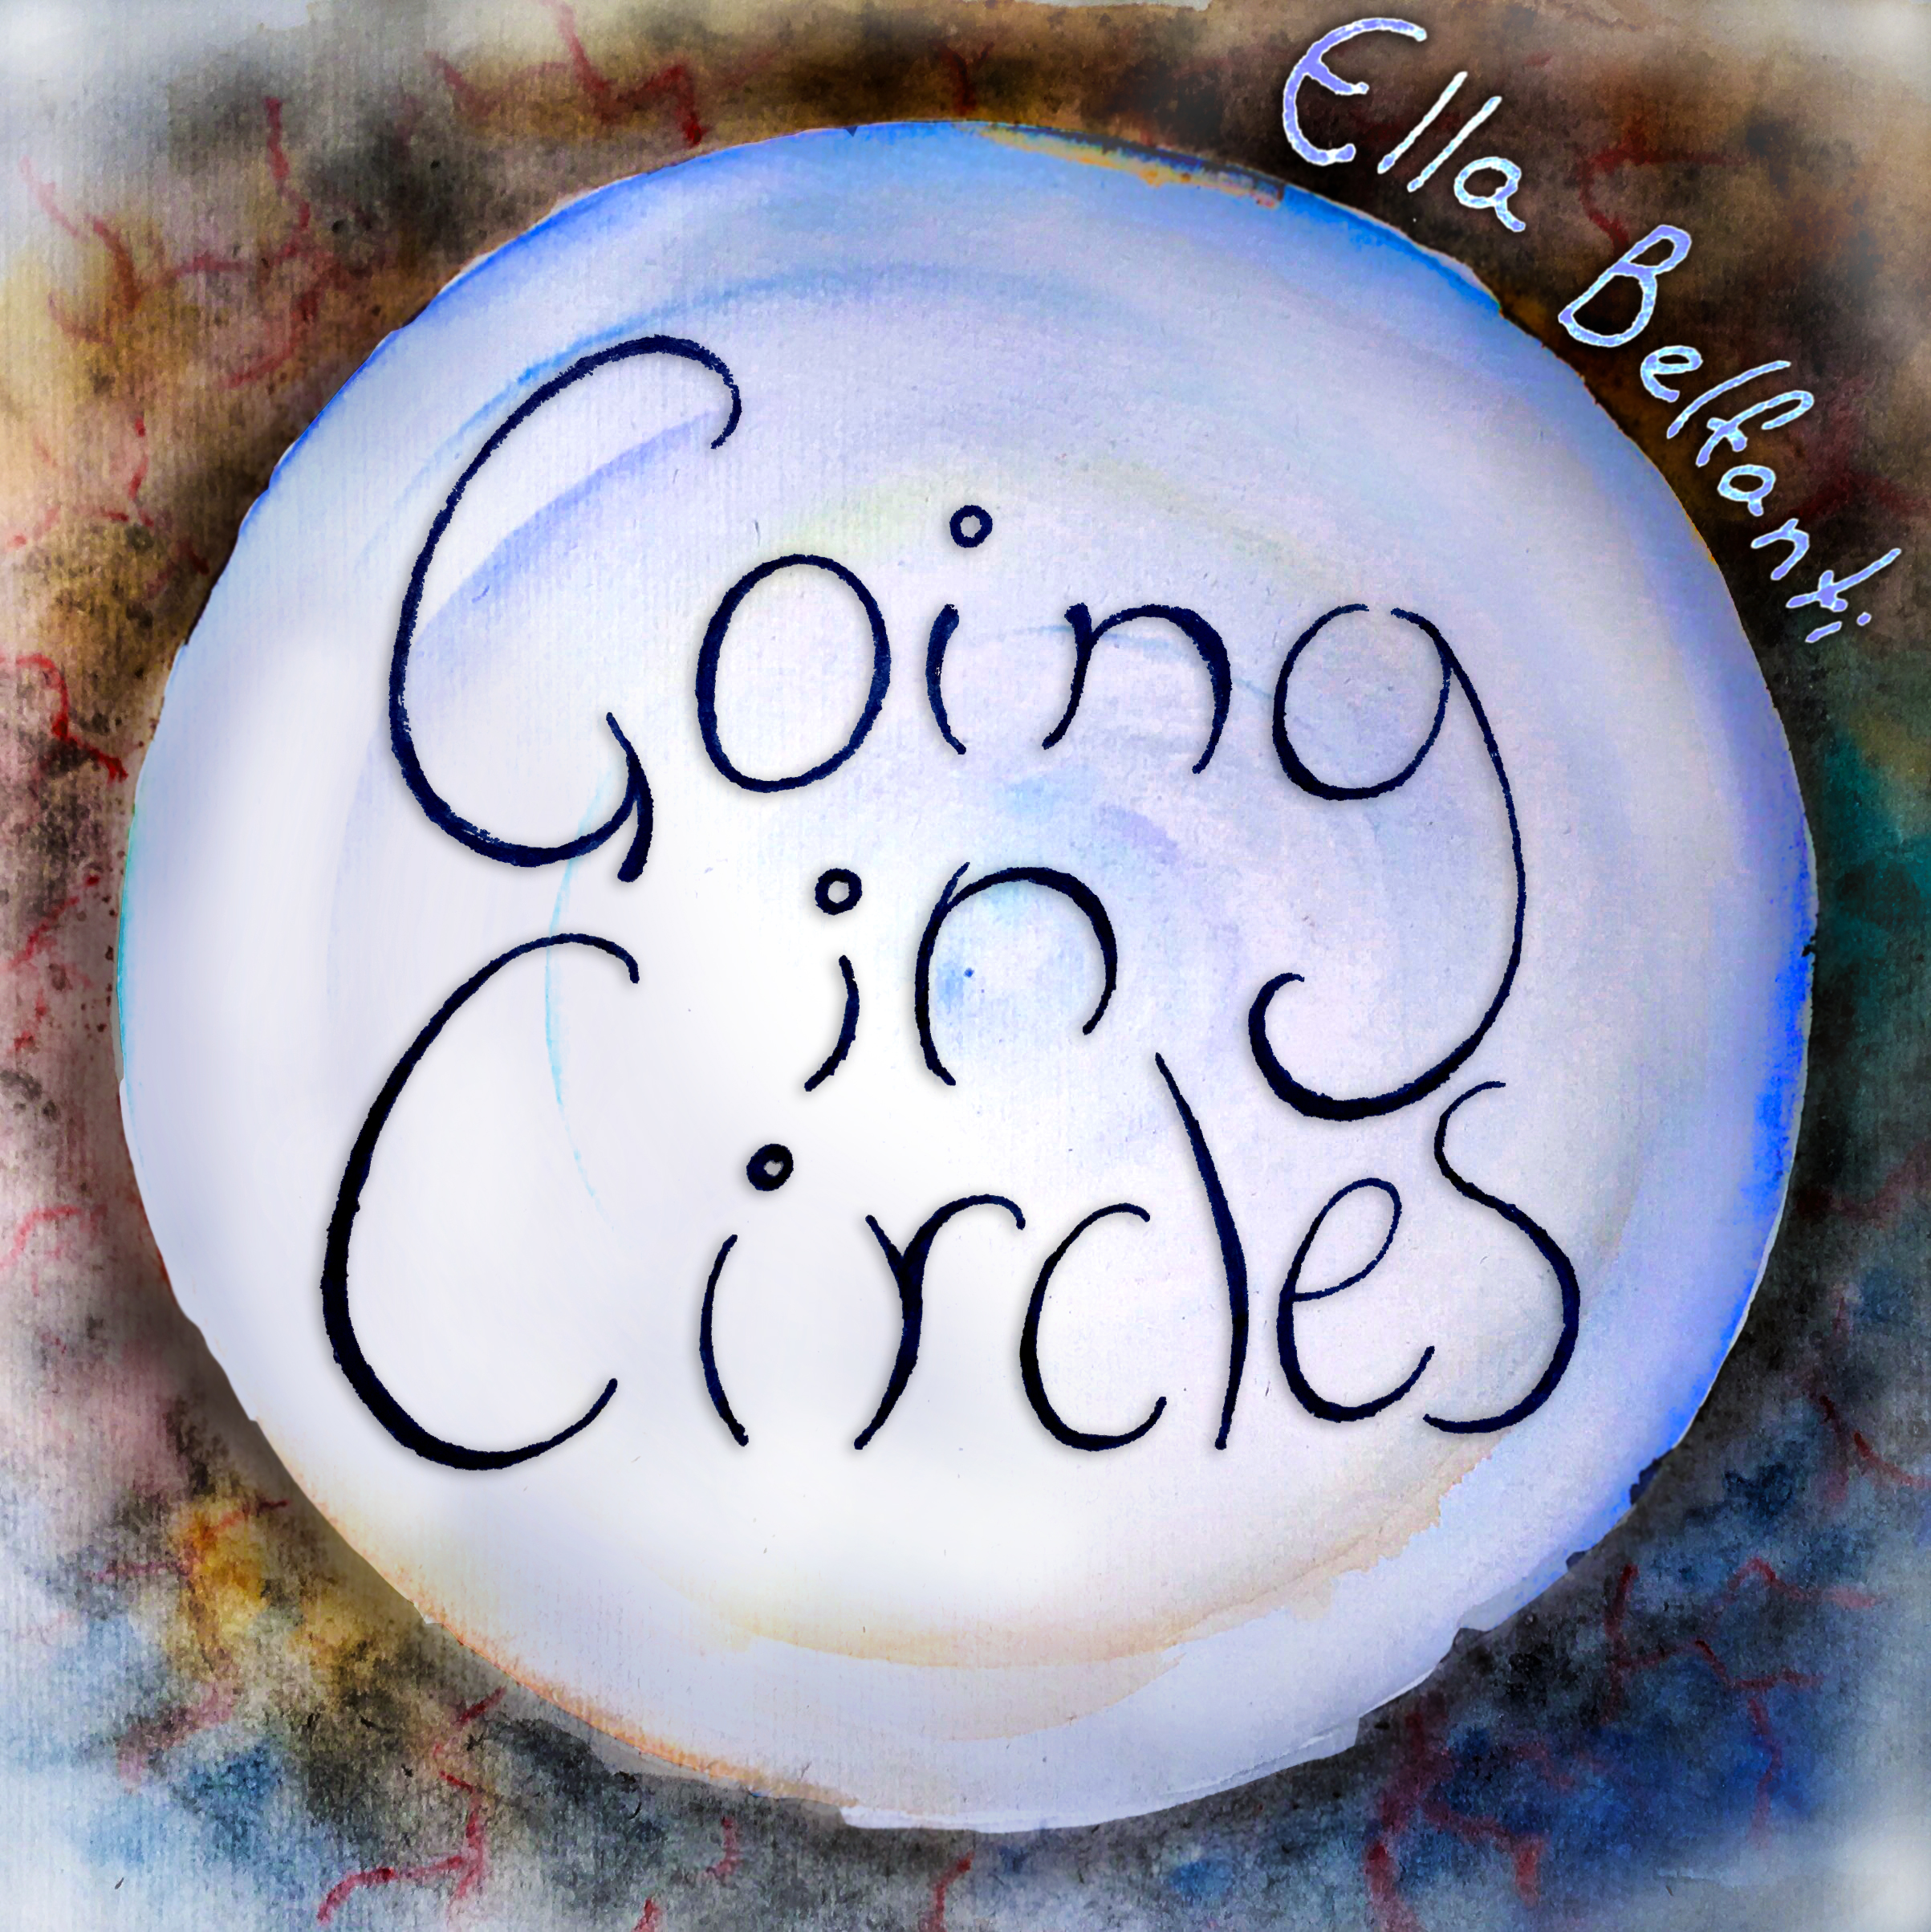 Ella Belfanti – Going In Circles